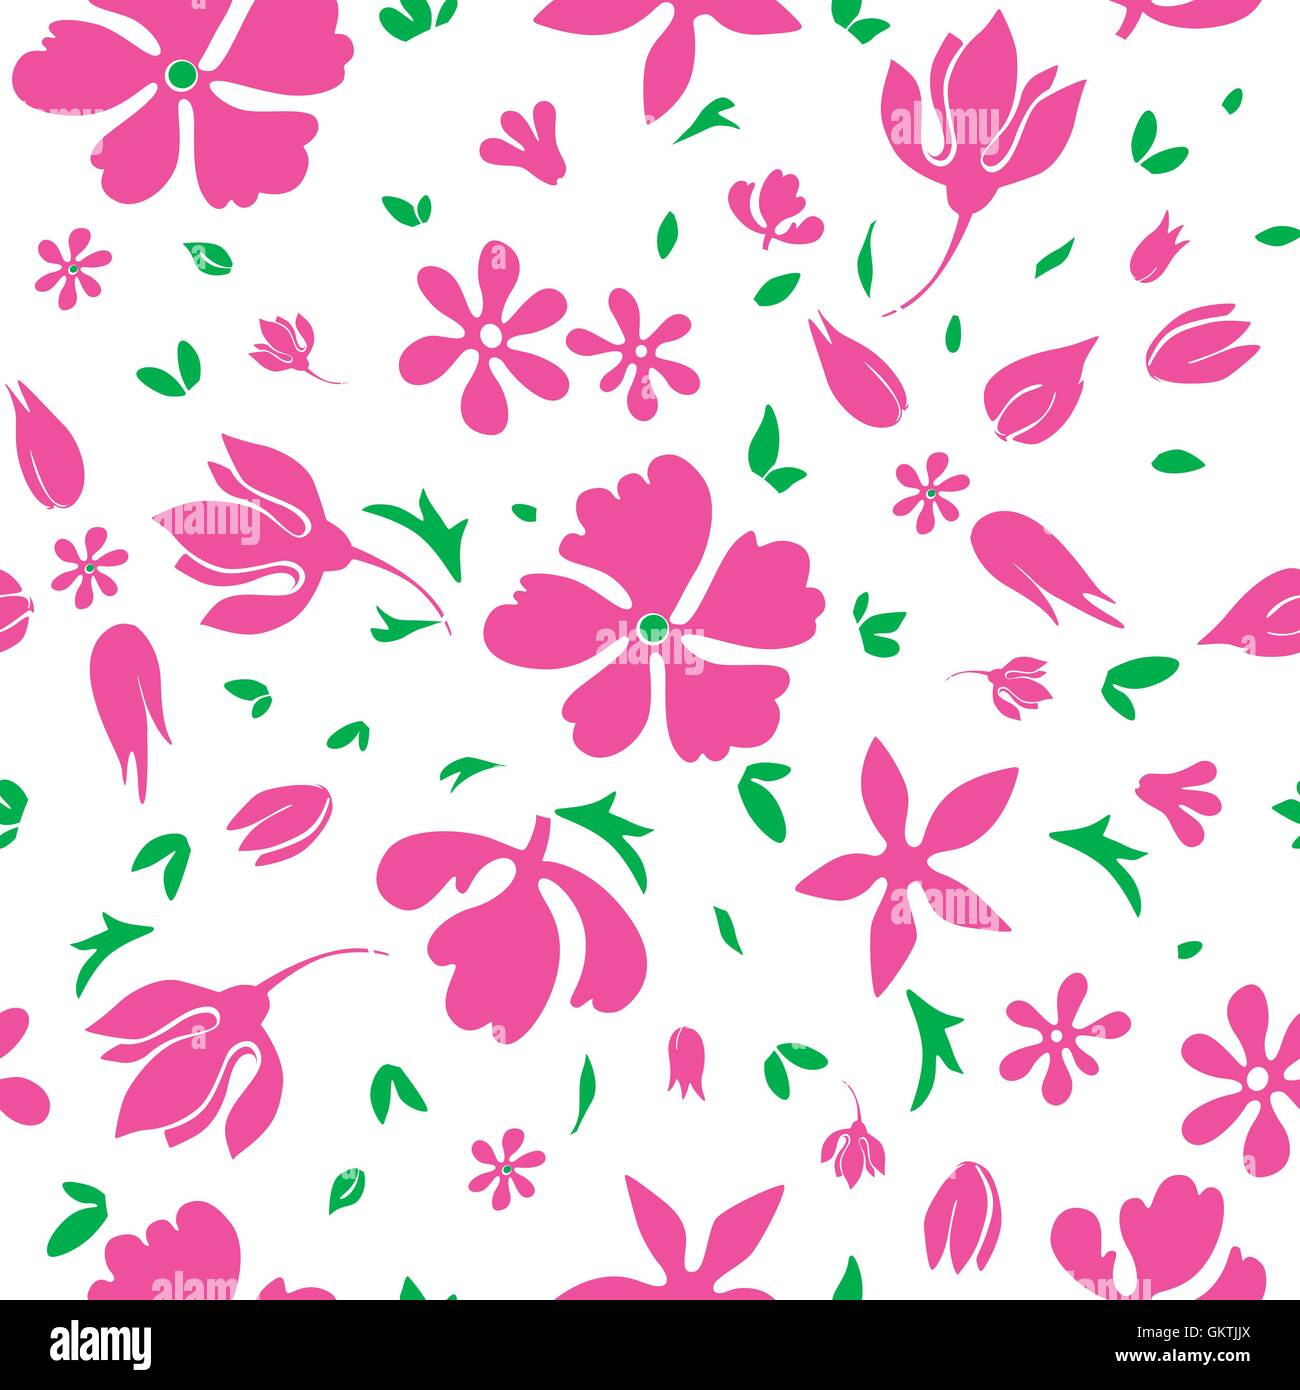 Vector Magenta Flowers Silhouettes Seamless Pattern - Stock Vector